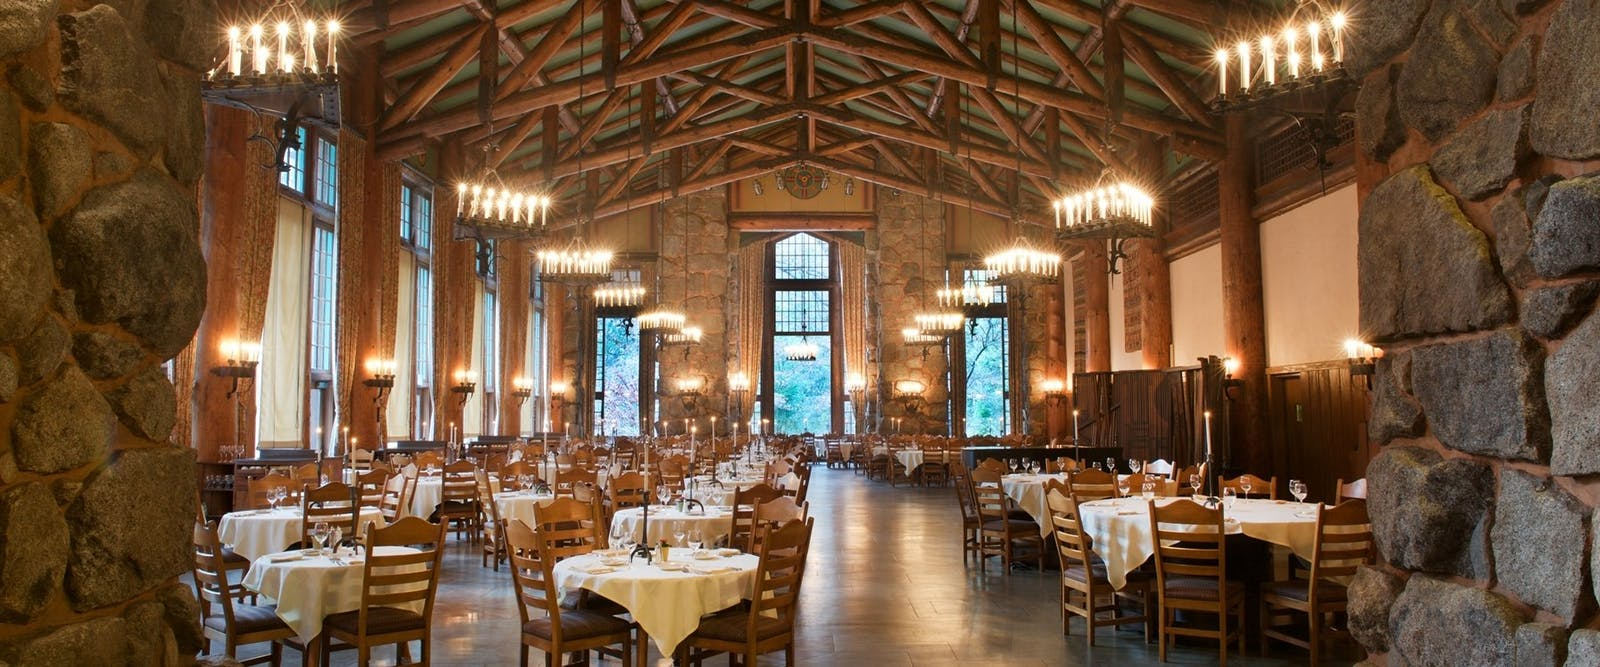 Majestic Dining Room at Majestic Yosemite Hotel, California